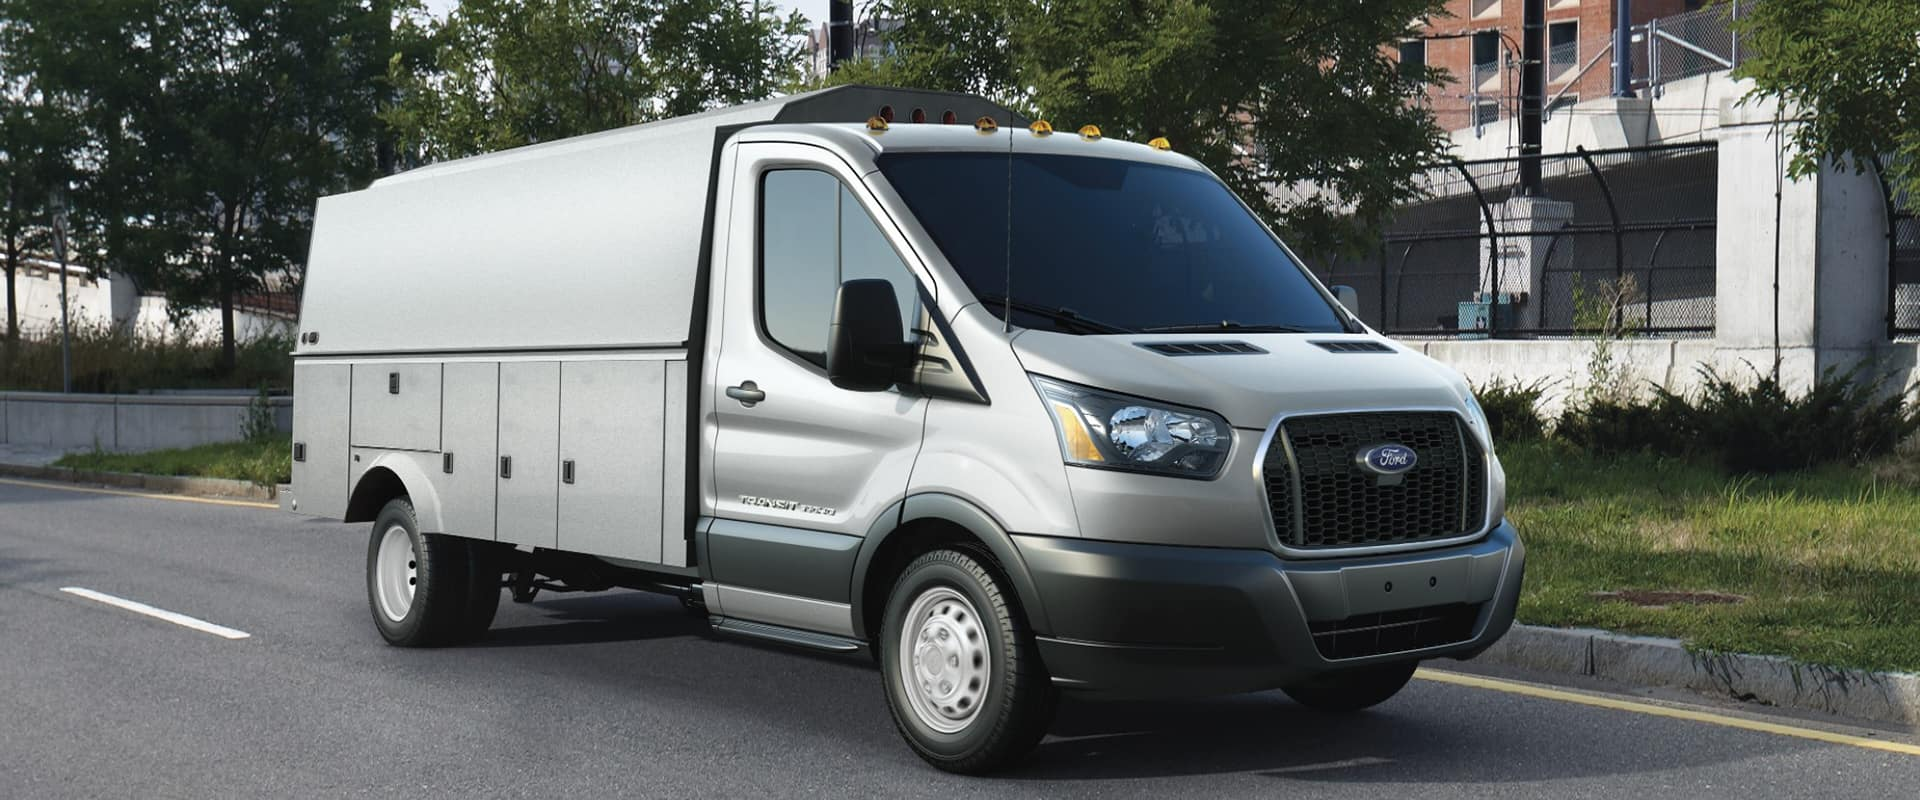 2021 Ford Transit Chassis Cab & Cutaway near St. Louis